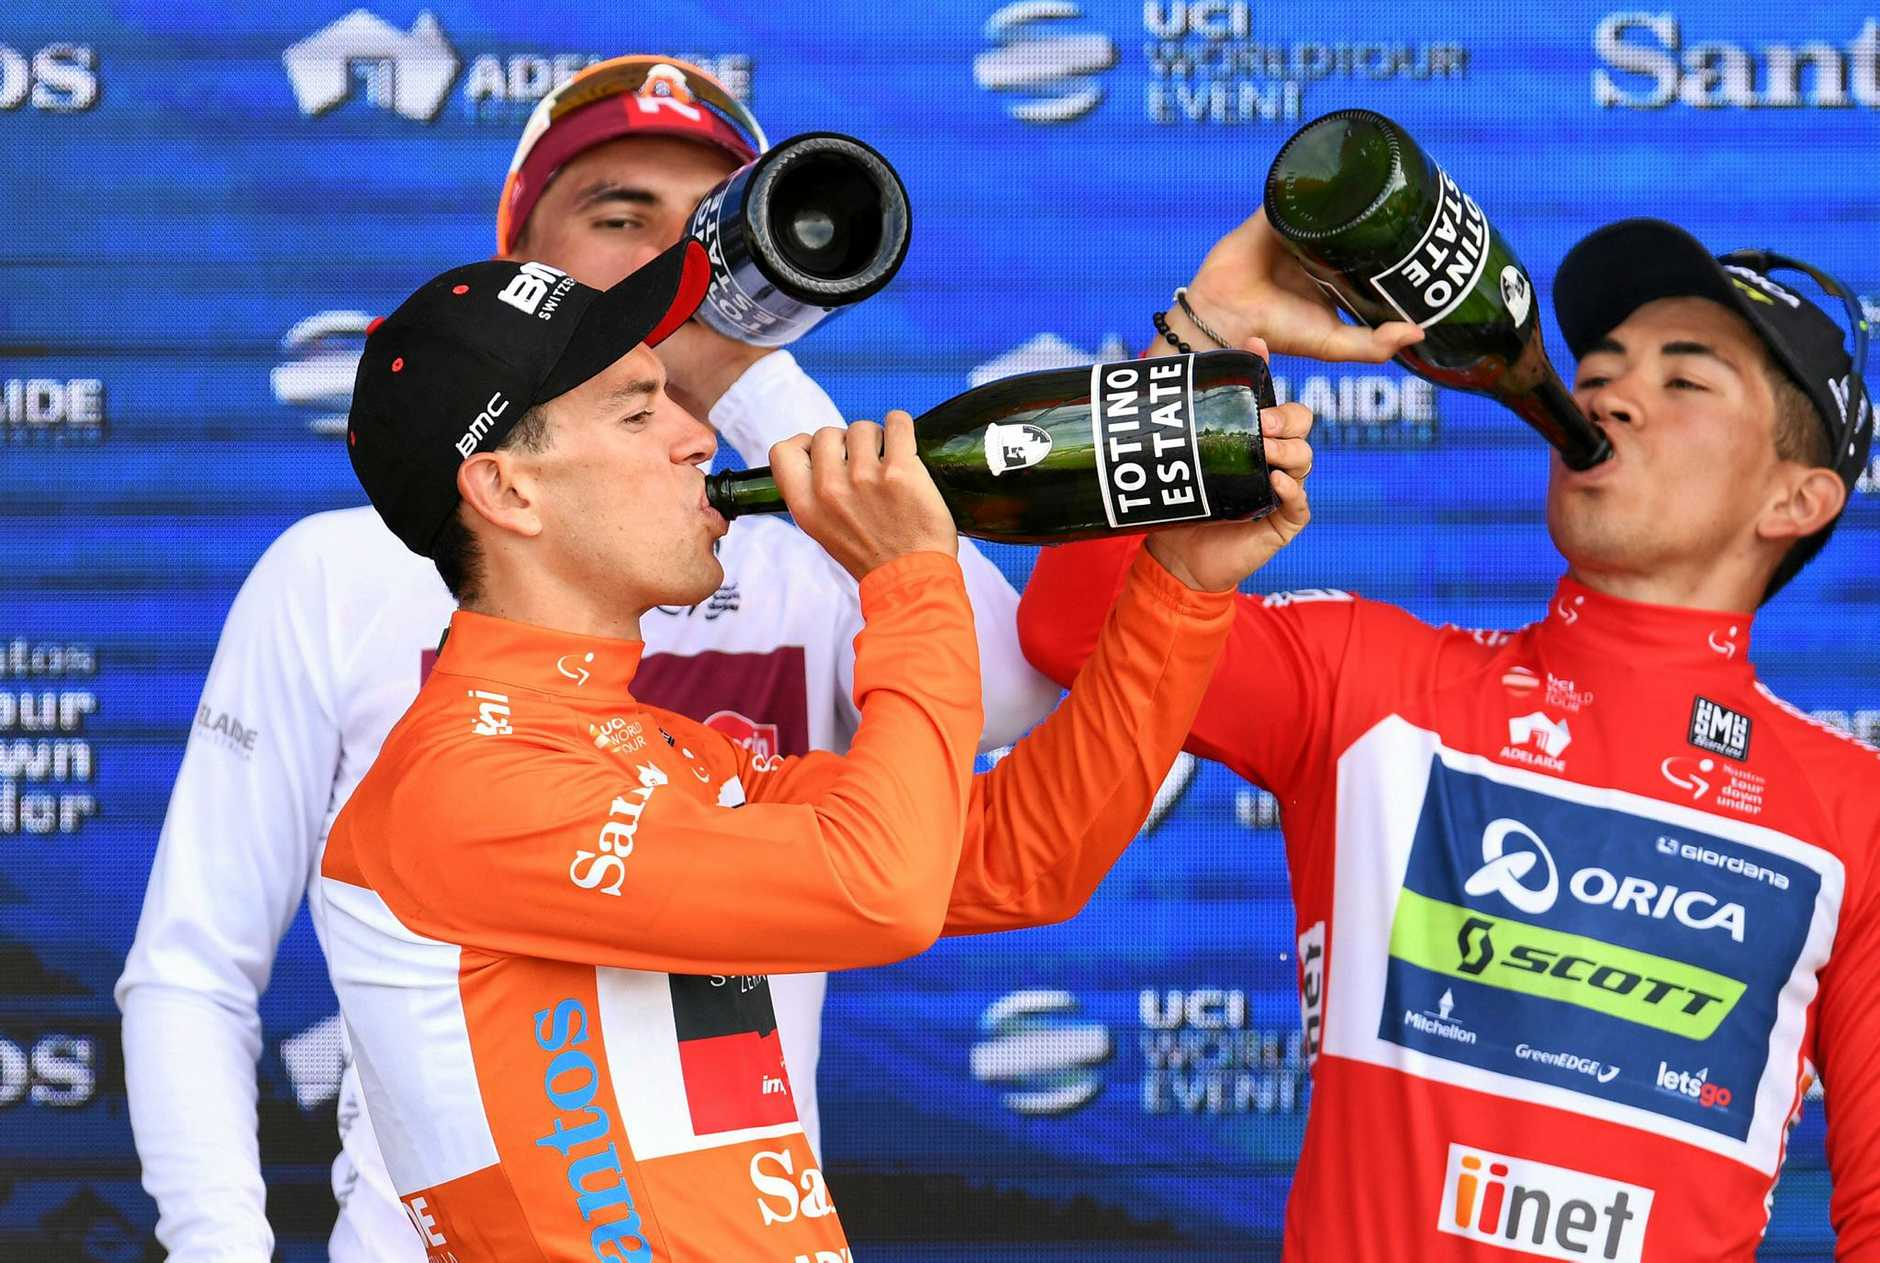 Australian Richie Porte, of team BMC Racing (front), along with Caleb Ewan (right) and Jhonatan Restrepo drink a celebratory champagne at the winners presentation.